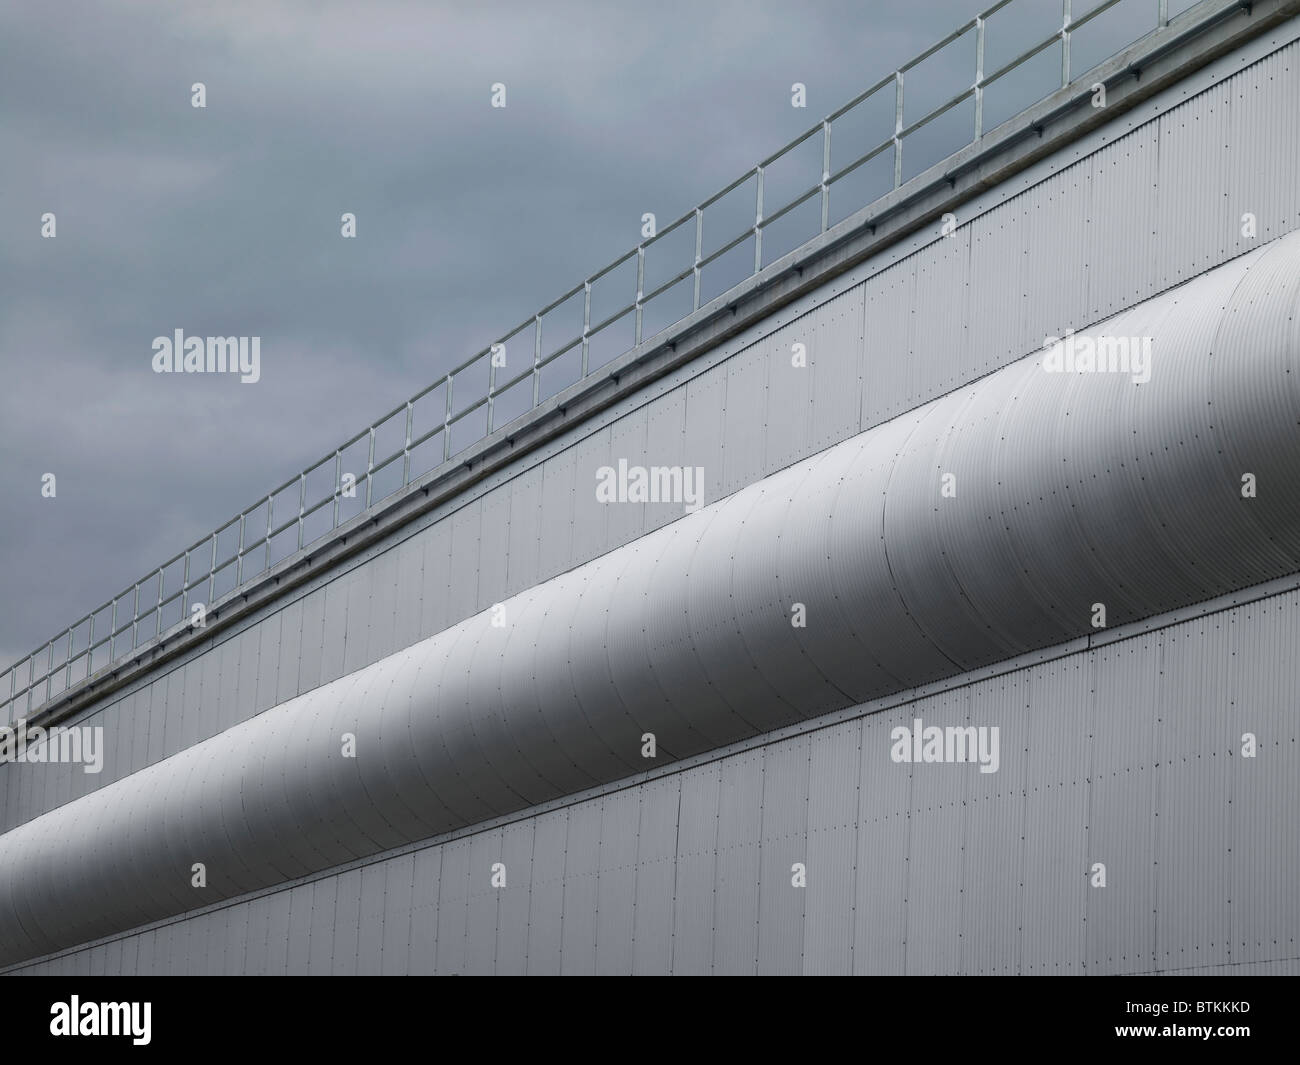 Industrial Corrugated Metal Wall With Railing - Stock Image